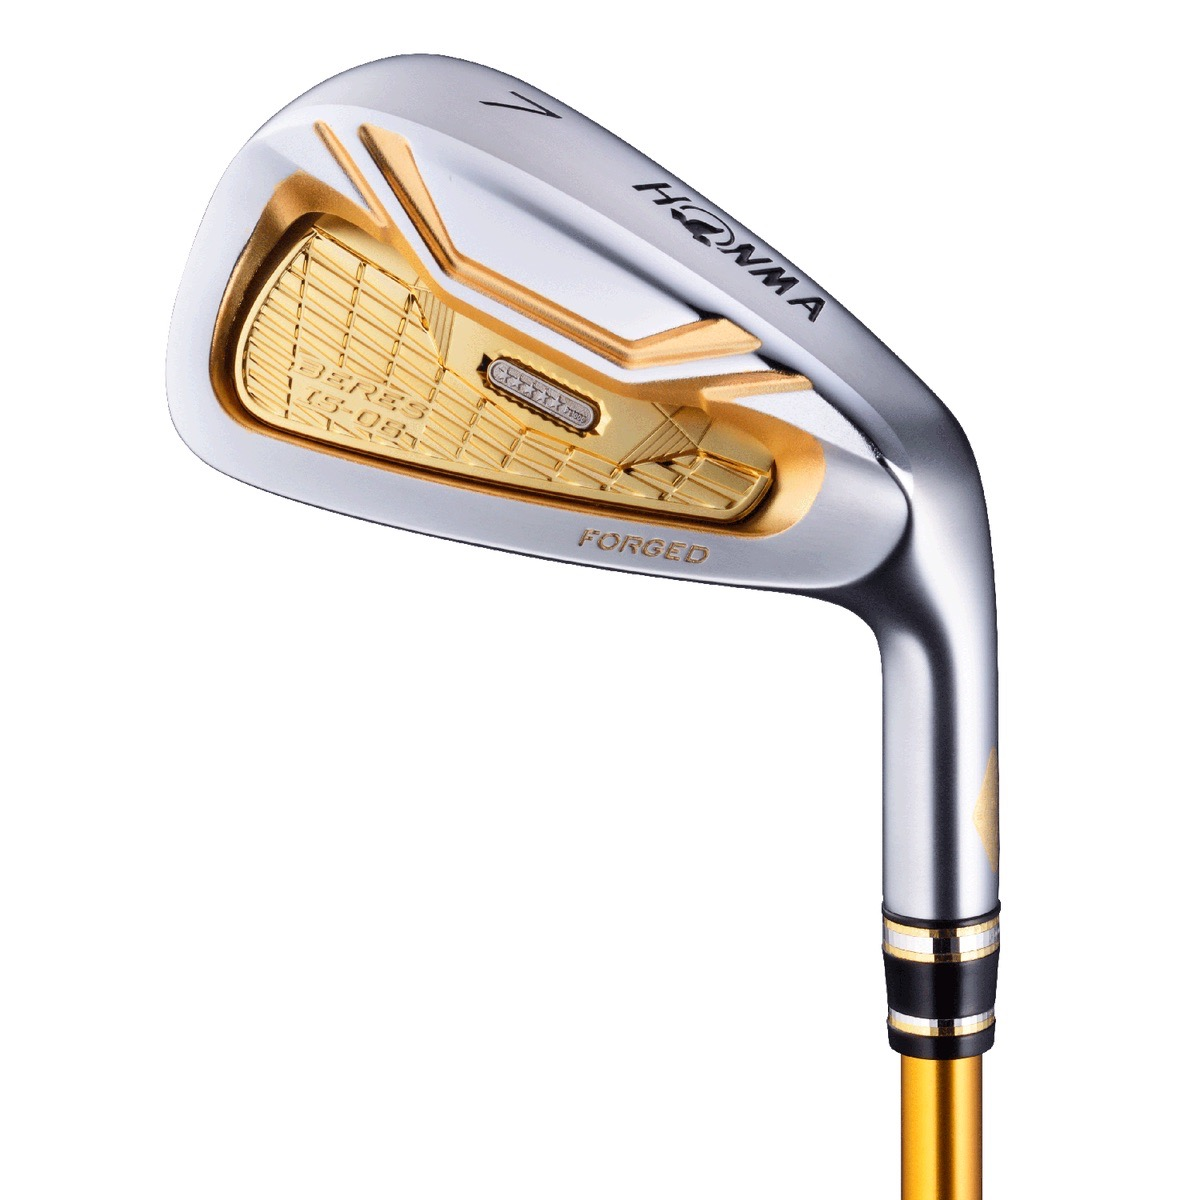 Honma Beres Golf Club Most Expensive Things on the Planet